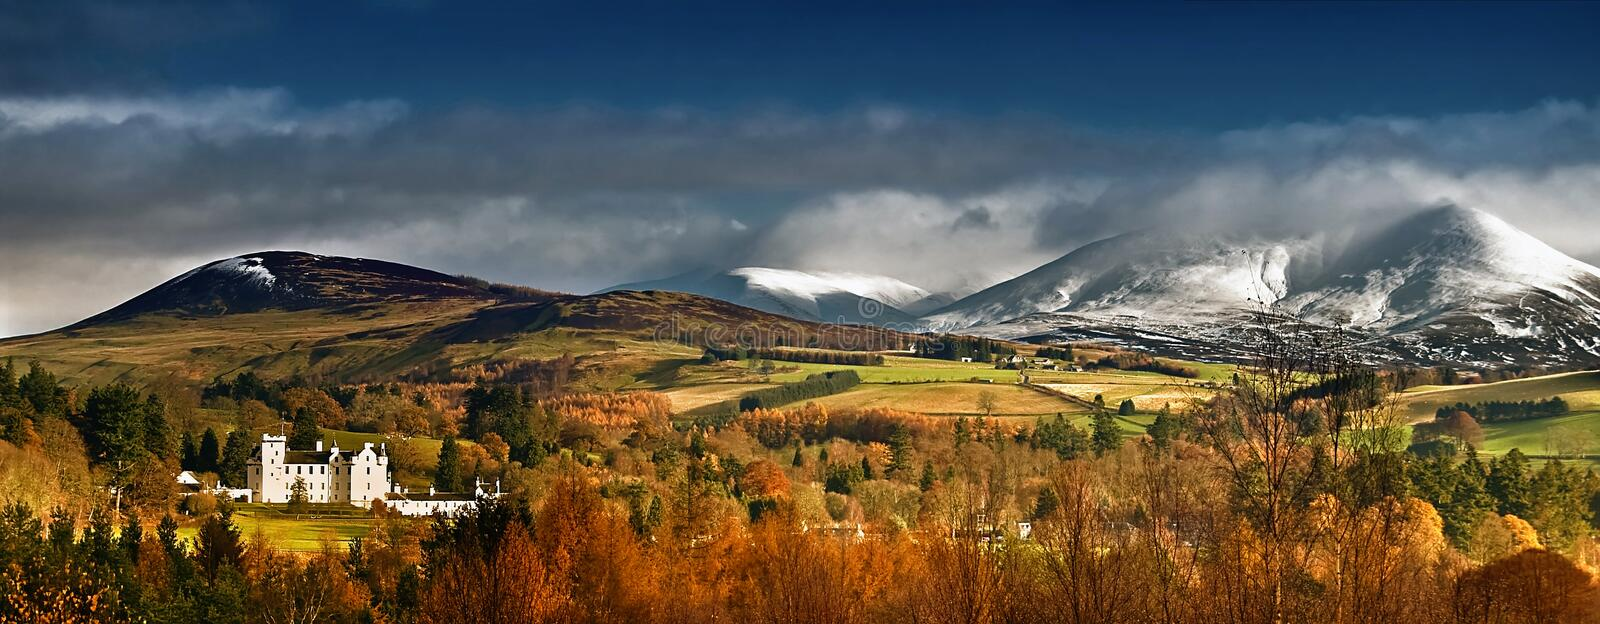 Blair Castle Panorama royalty free stock images